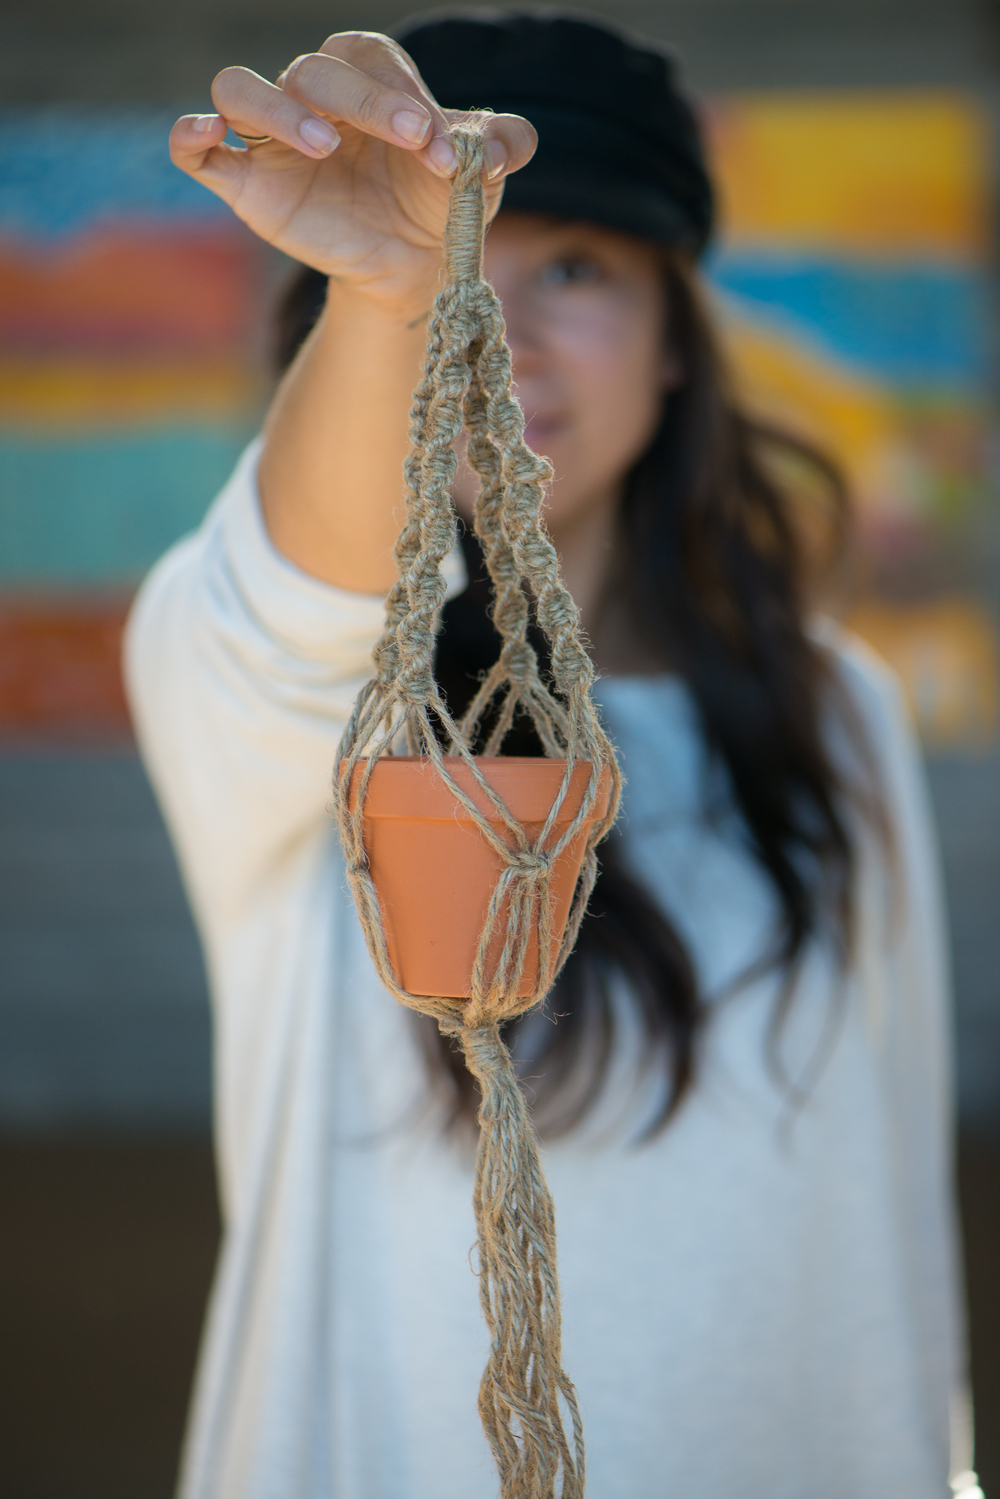 Jenna Lane will be teaching plant hanger crafts on saturday august 13th, 2016 at the tourist information centre in cardston